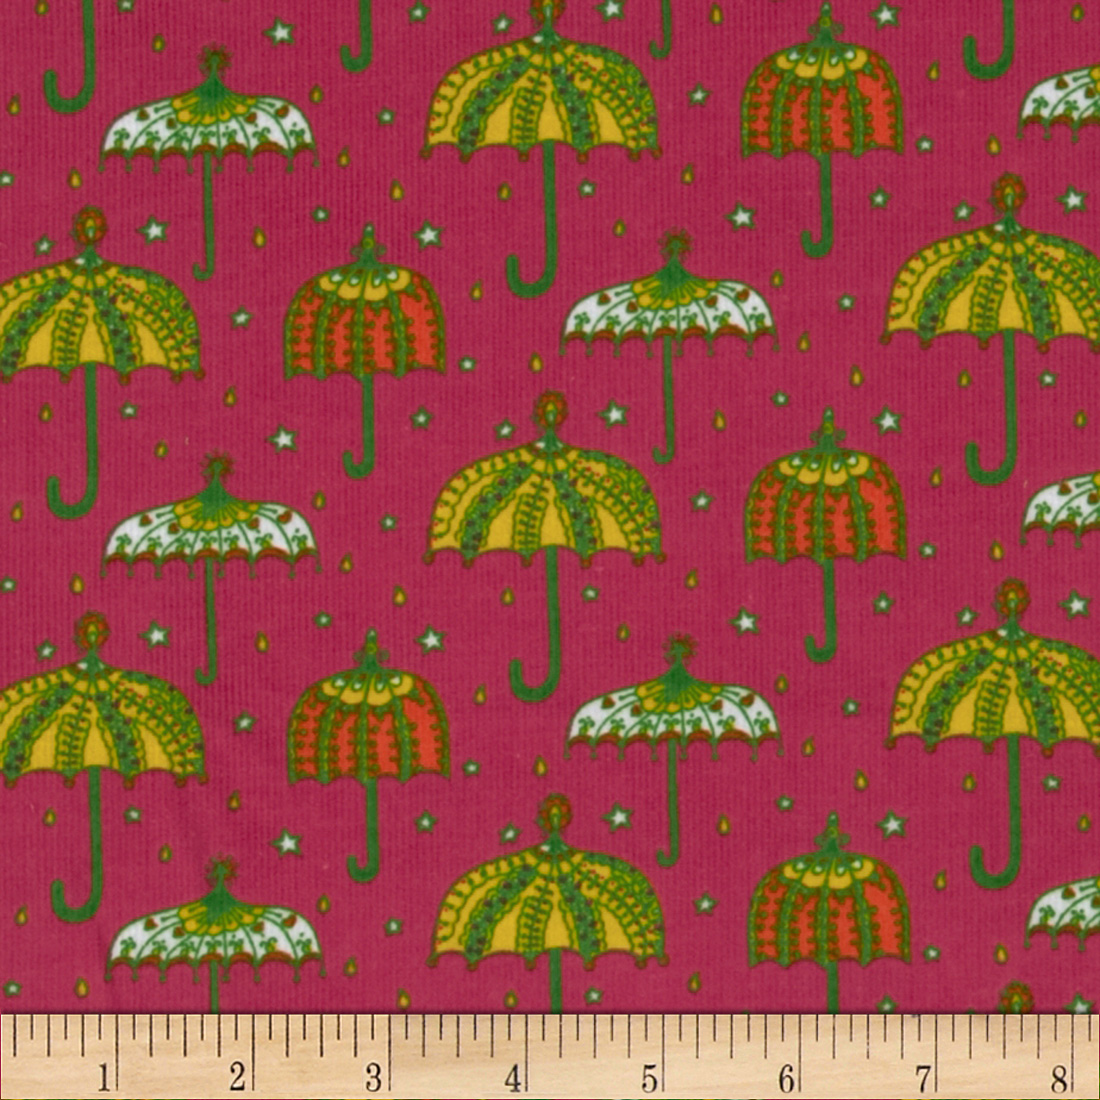 Kaufman 21 wale cool cords umbrellas hot pink for Children s corduroy fabric